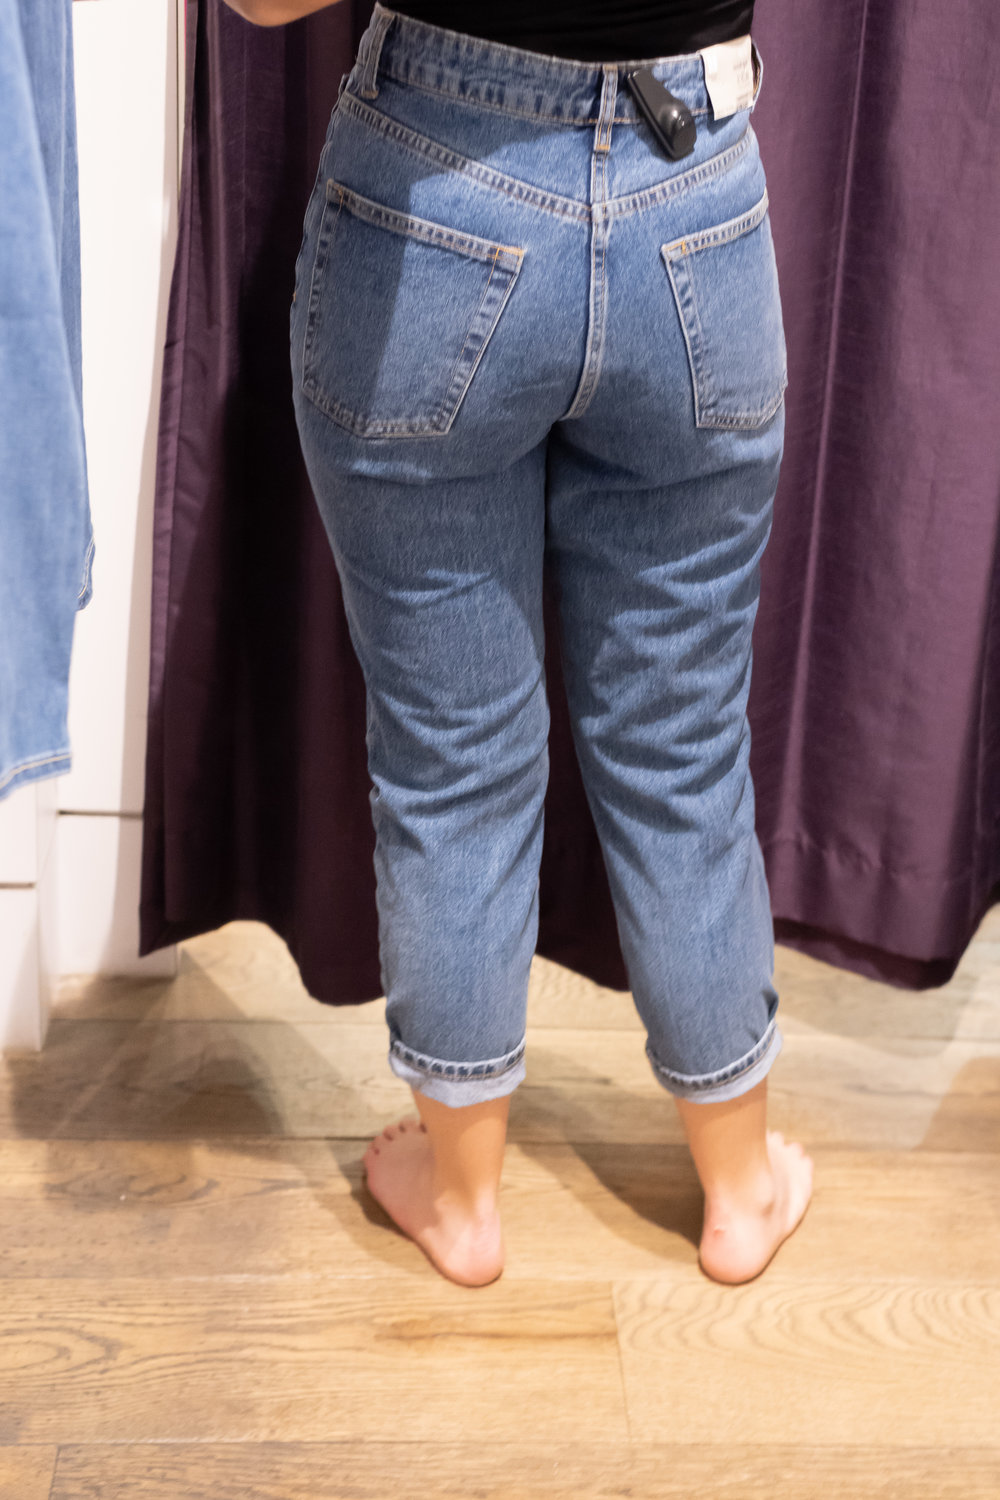 Topshop Petite Mom Jeans - Size 28 Petite - Back View